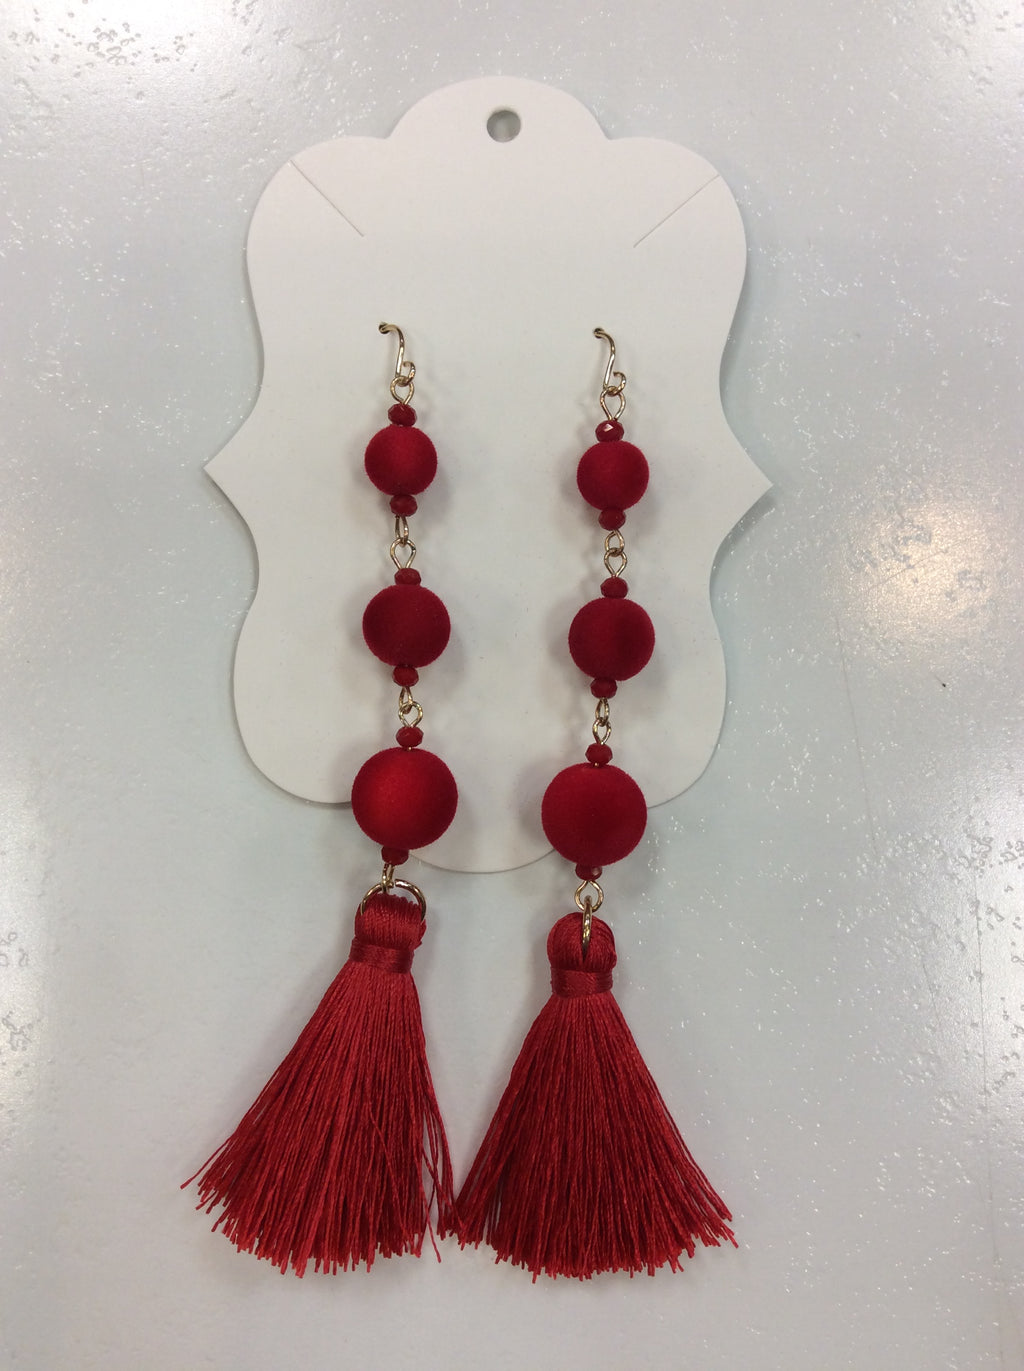 Velvet Ball Earrings with Tassel Detail